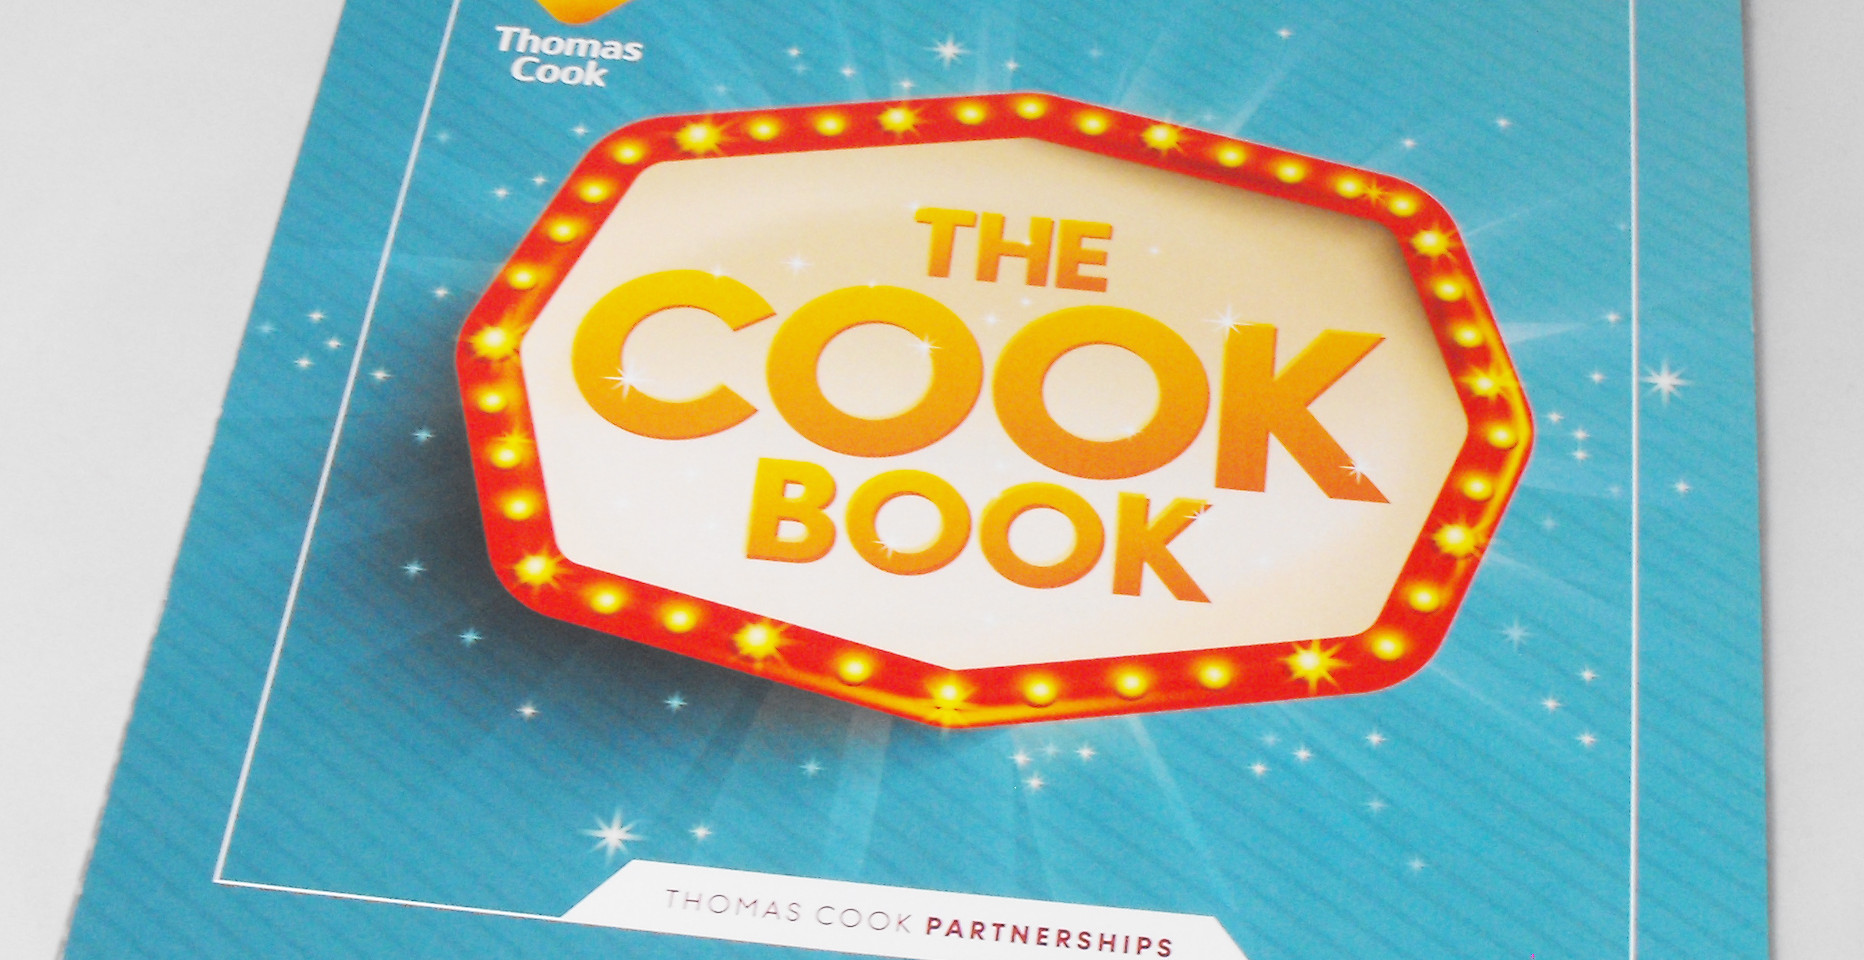 TC - Cook book.jpg